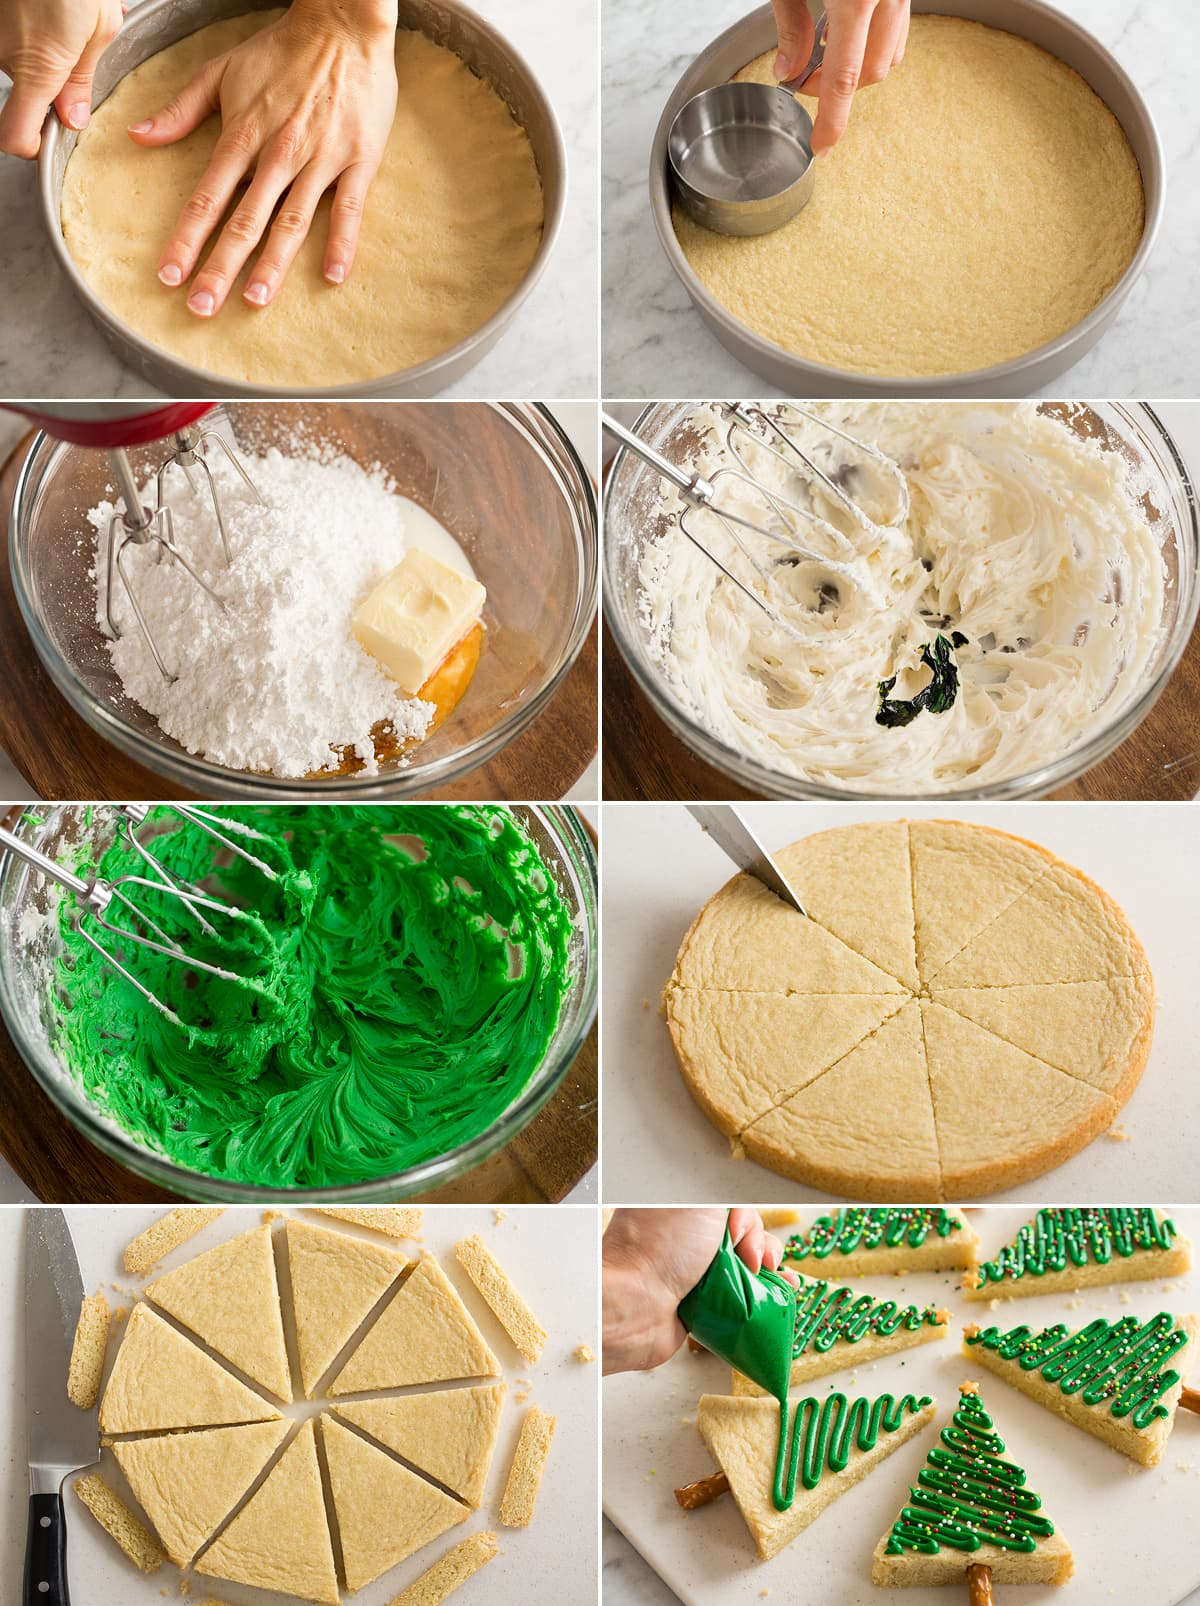 Collage of eight images showing how to press dough into cake pan to bake. Then shows making frosting, slicing cookie into wedges and decorating.